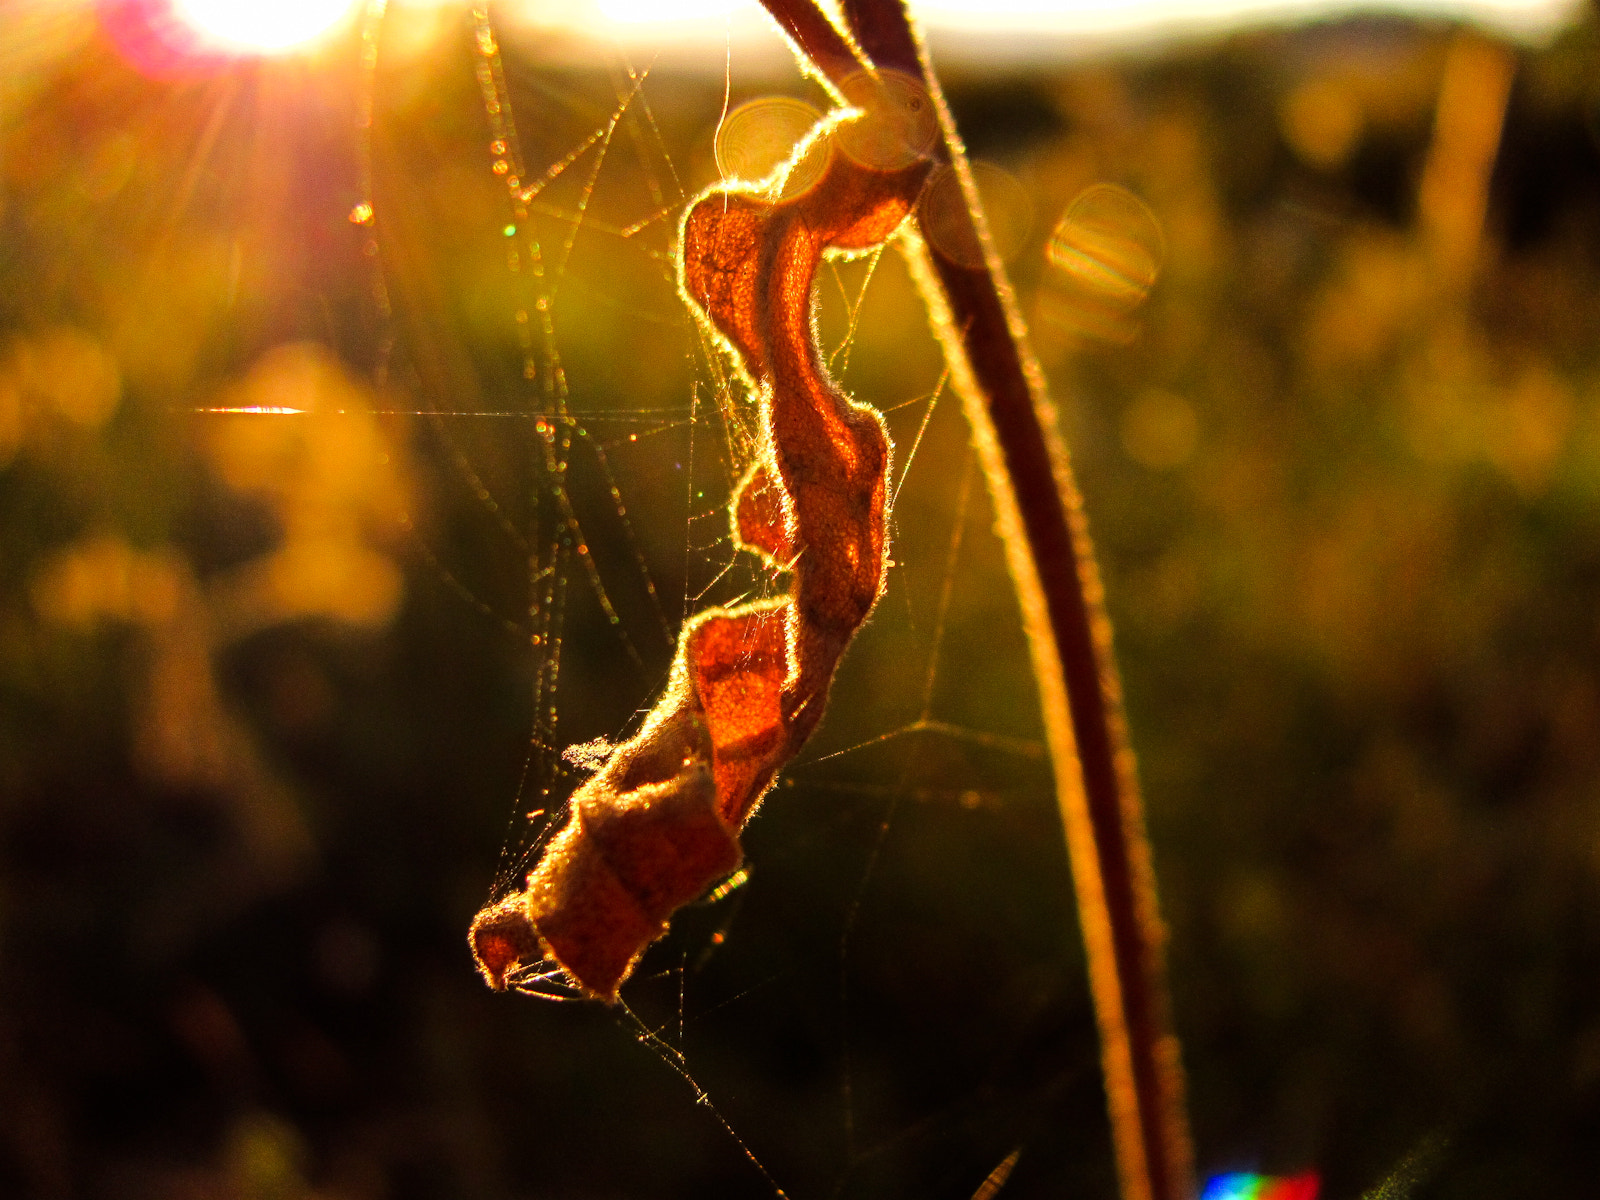 Photograph Home of a spider by Gustavo Carneiro on 500px